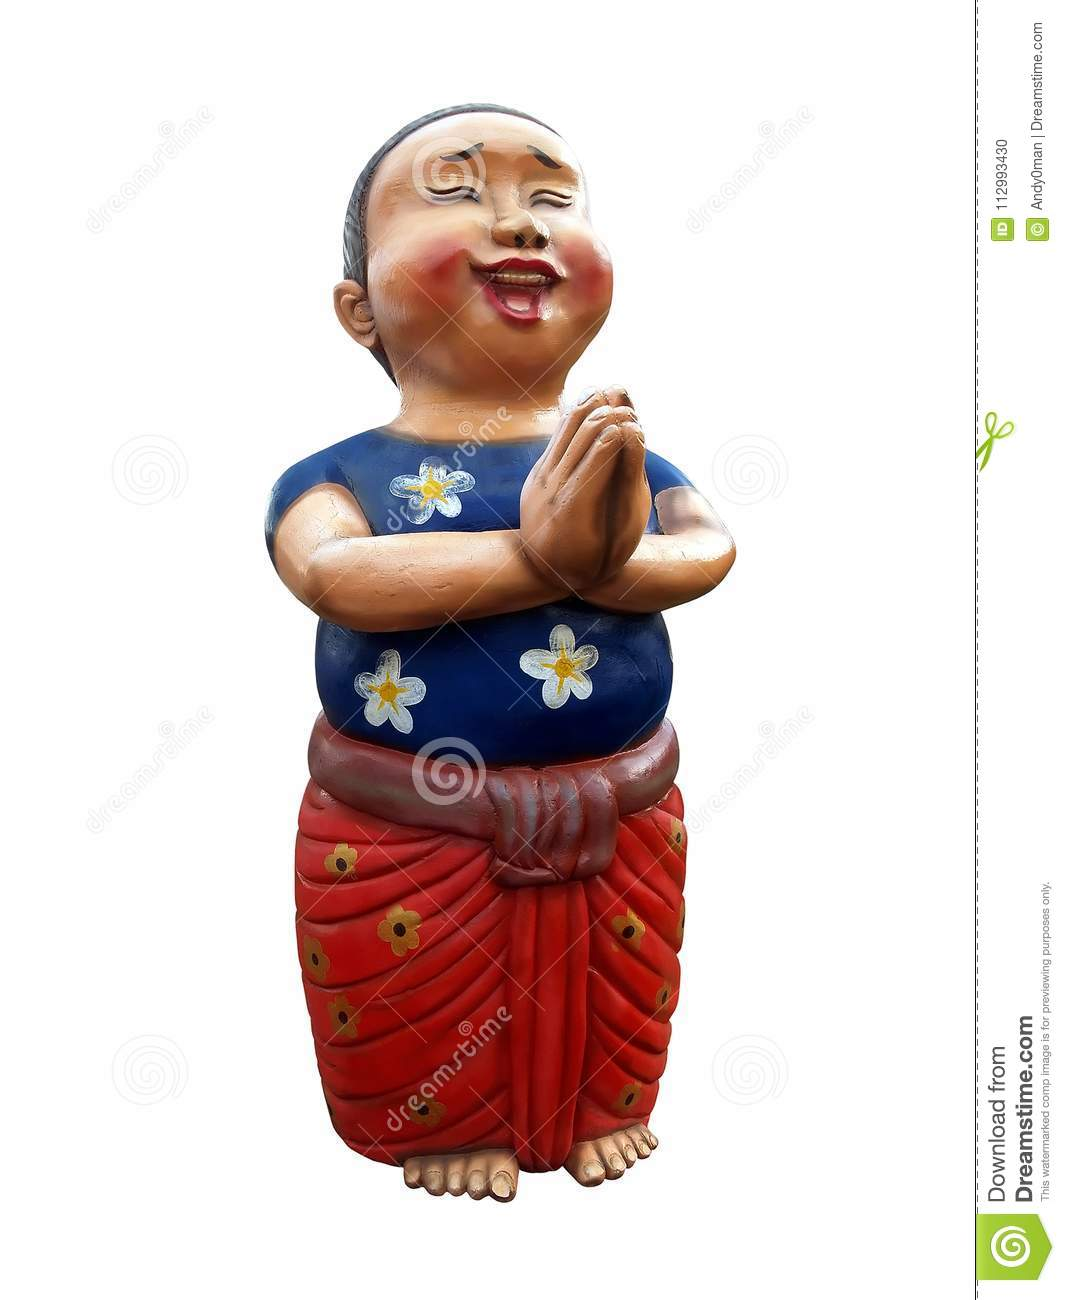 Boy wear blue t shirts and red loincloth smiling and put hands download boy wear blue t shirts and red loincloth smiling and put hands together in m4hsunfo